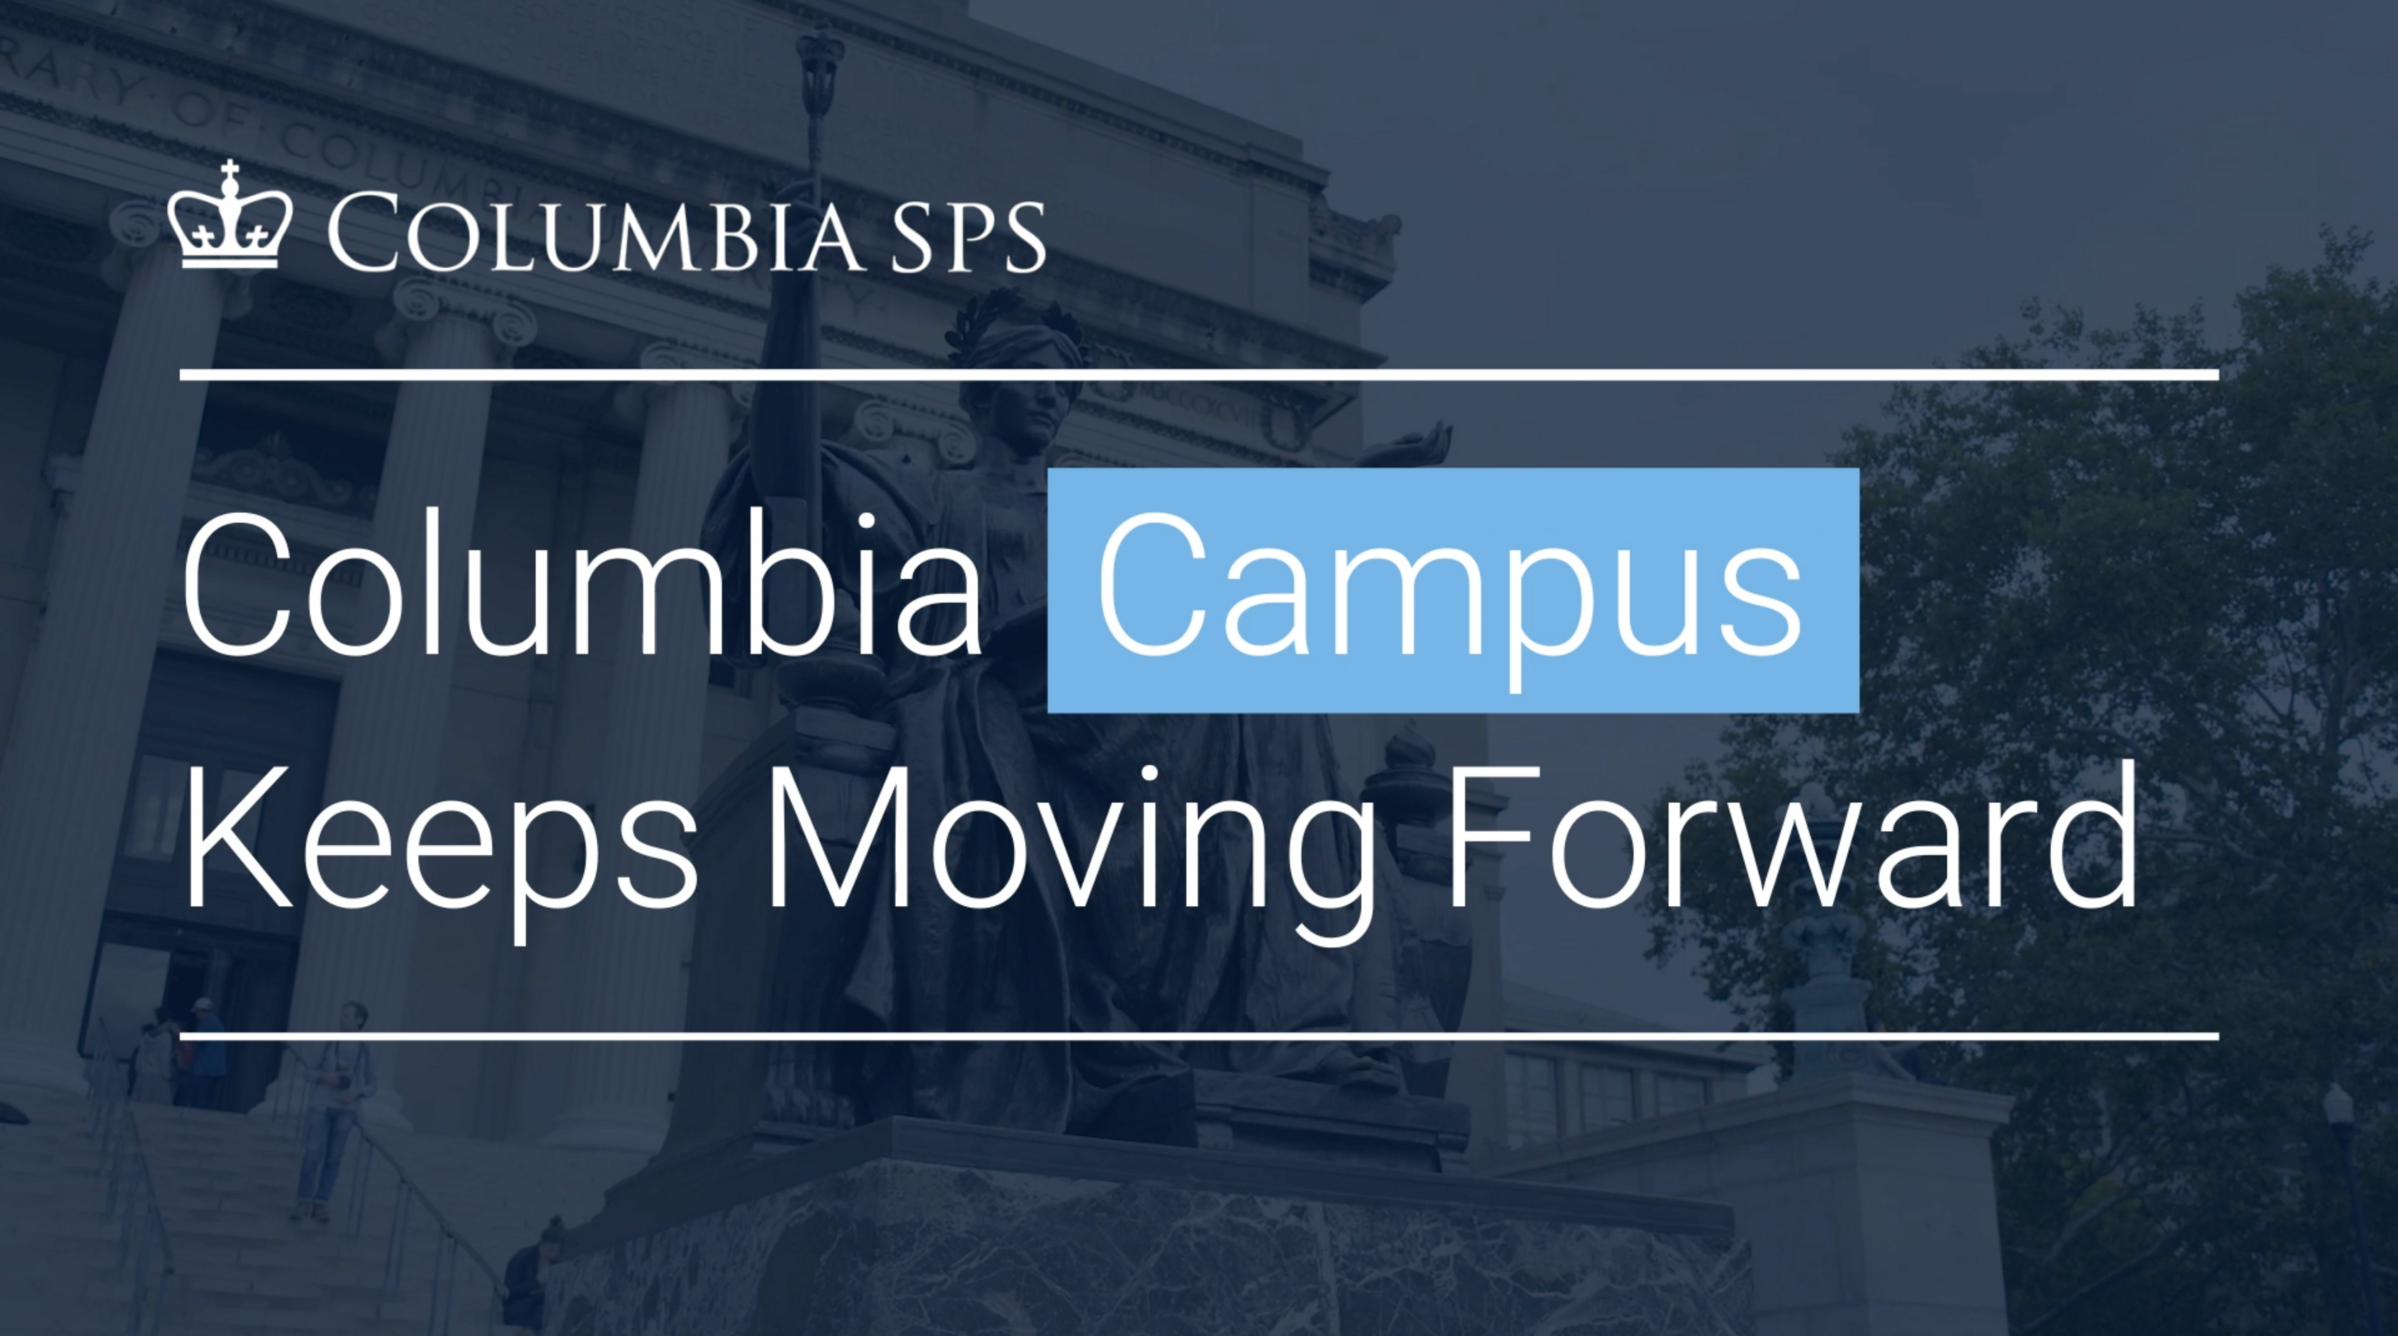 Columbia Campus Keeps Moving Forward